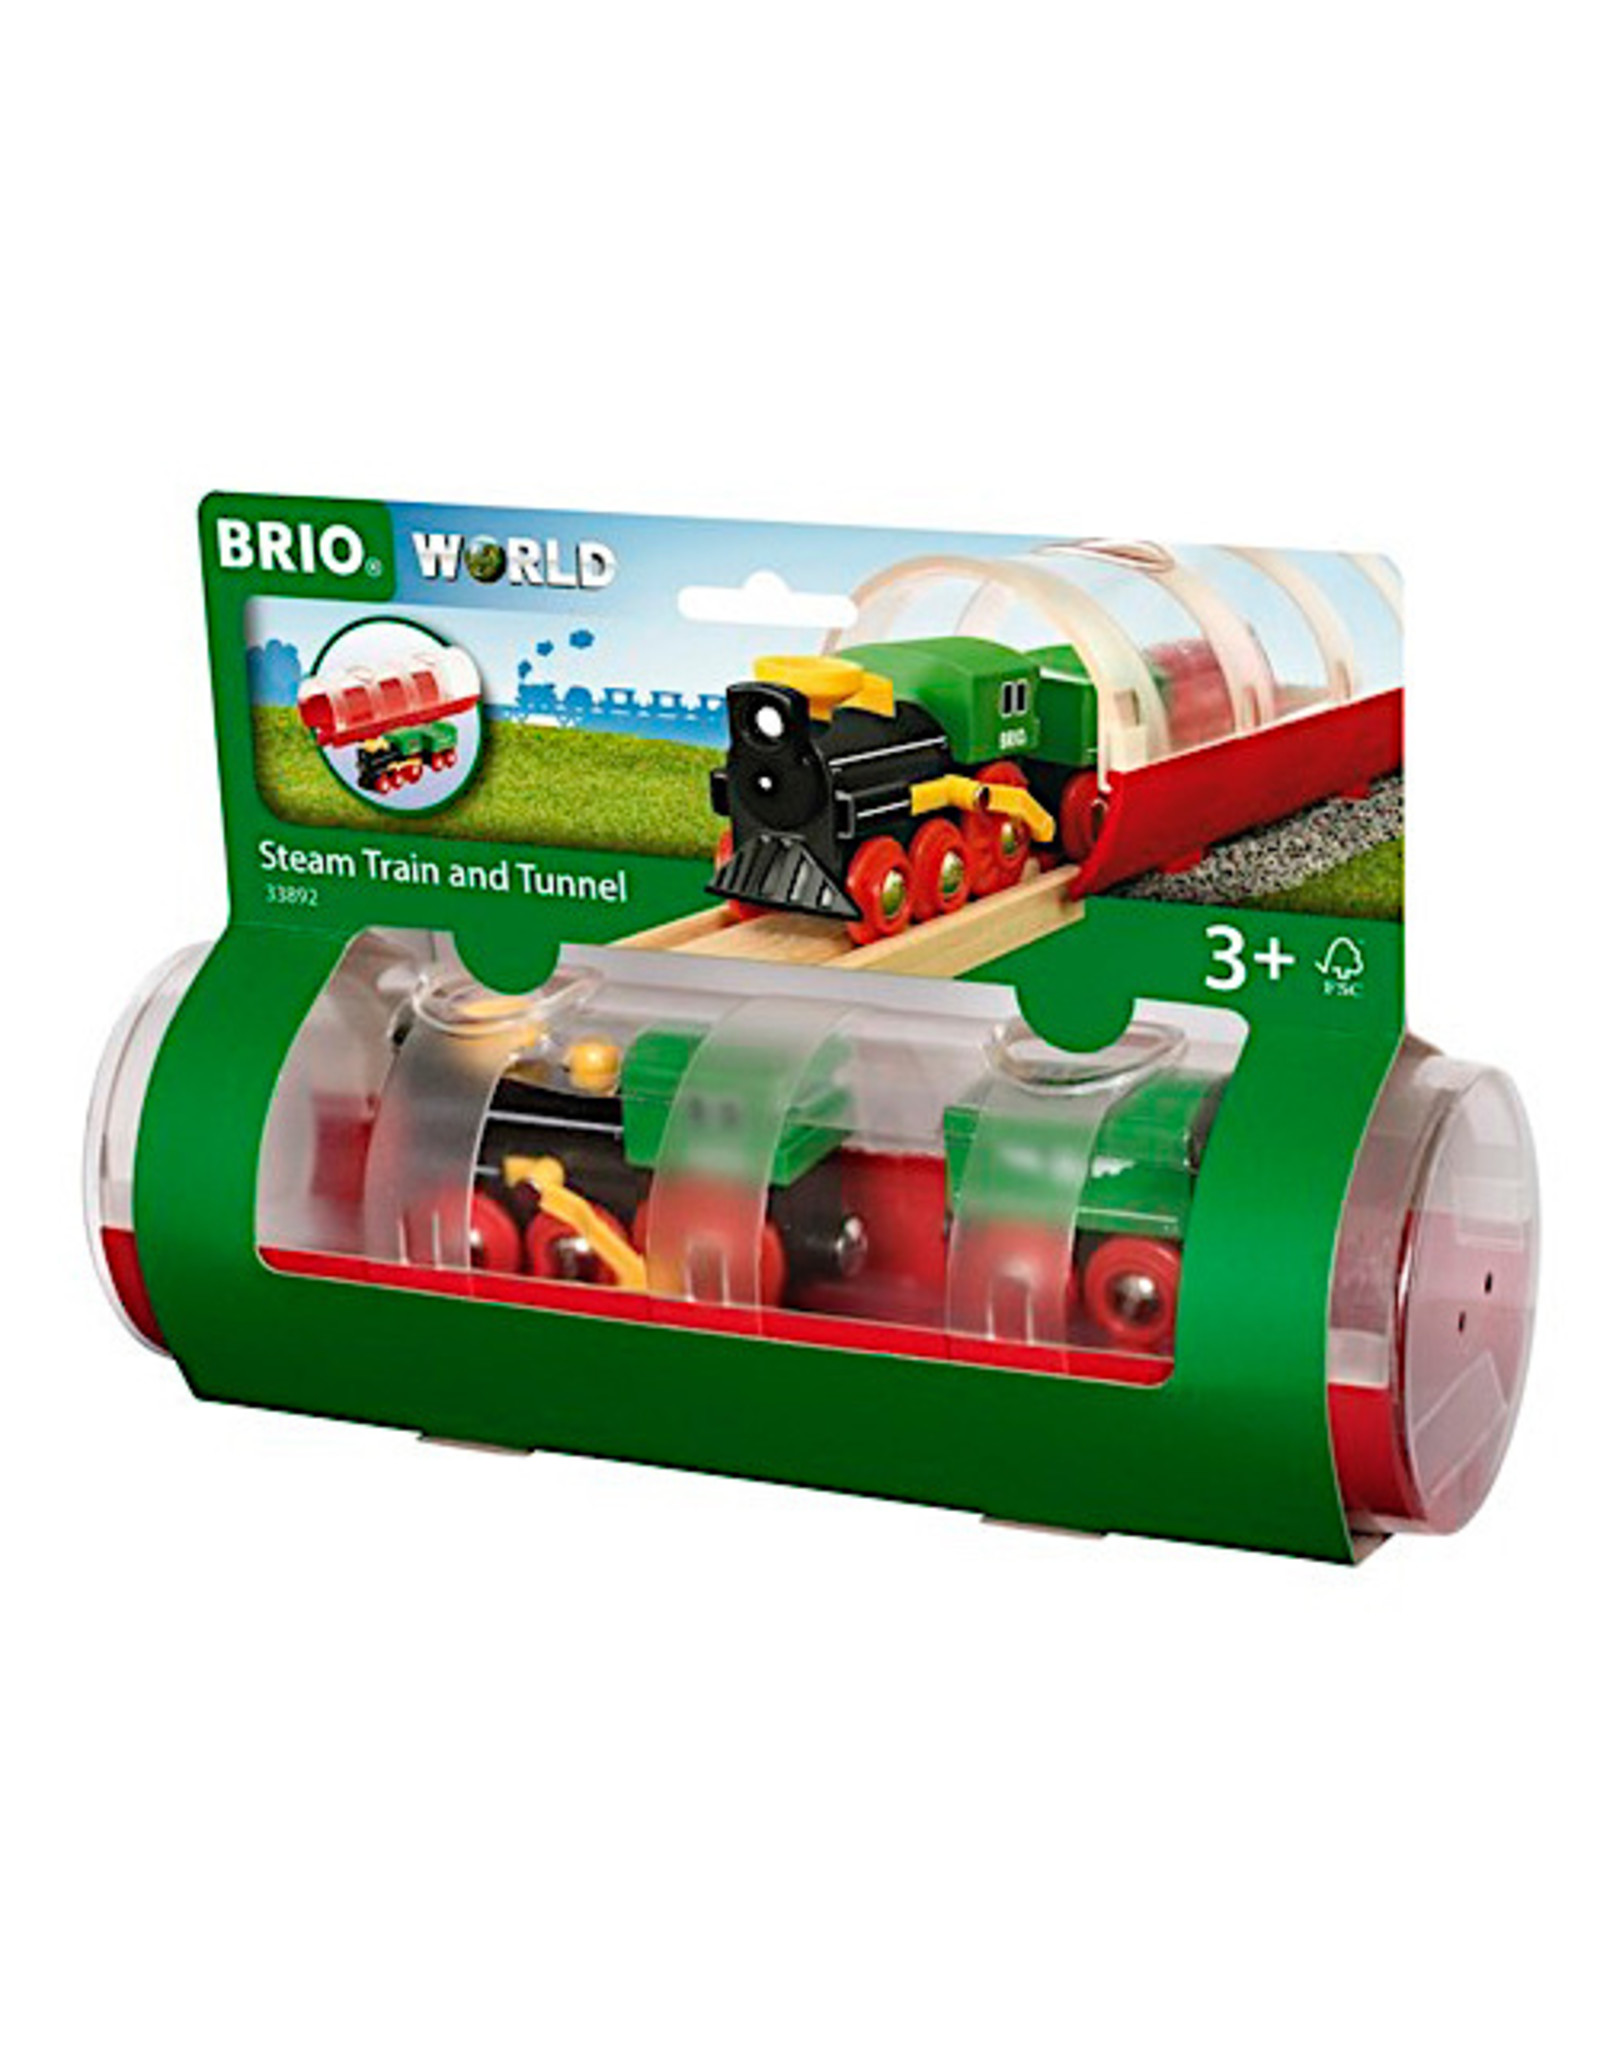 Brio Travel Train & Tunnel